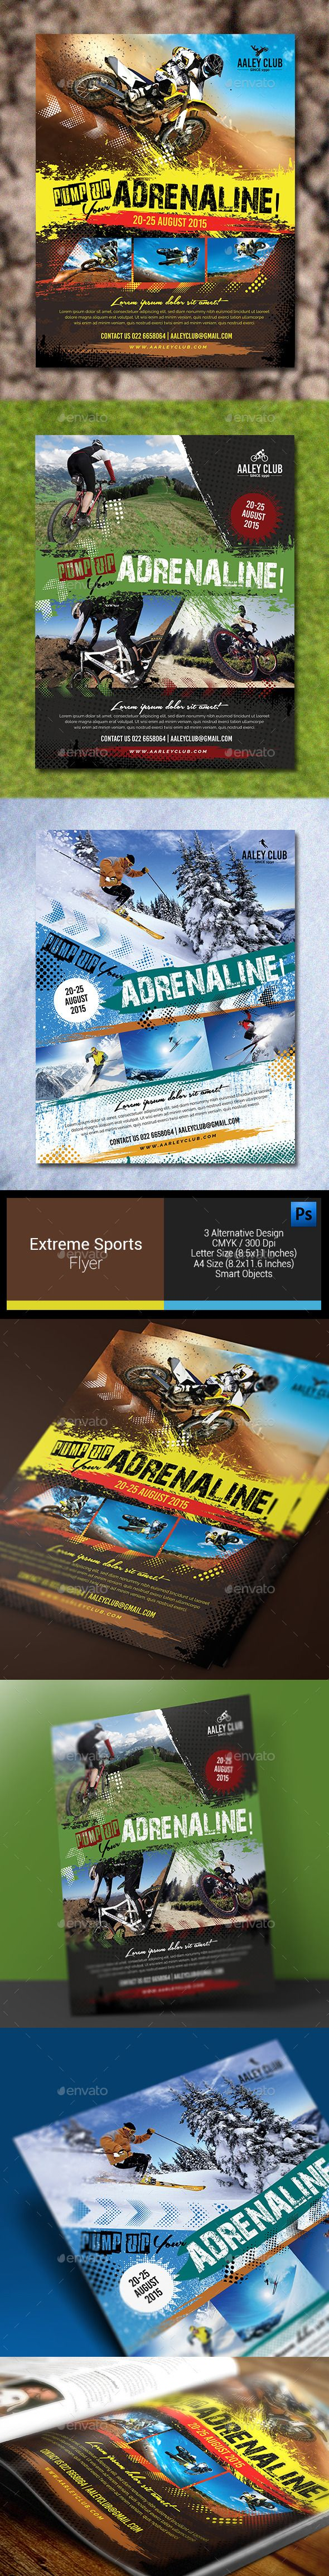 Extreme Sports Flyer / Magazine Ad - Sports Events